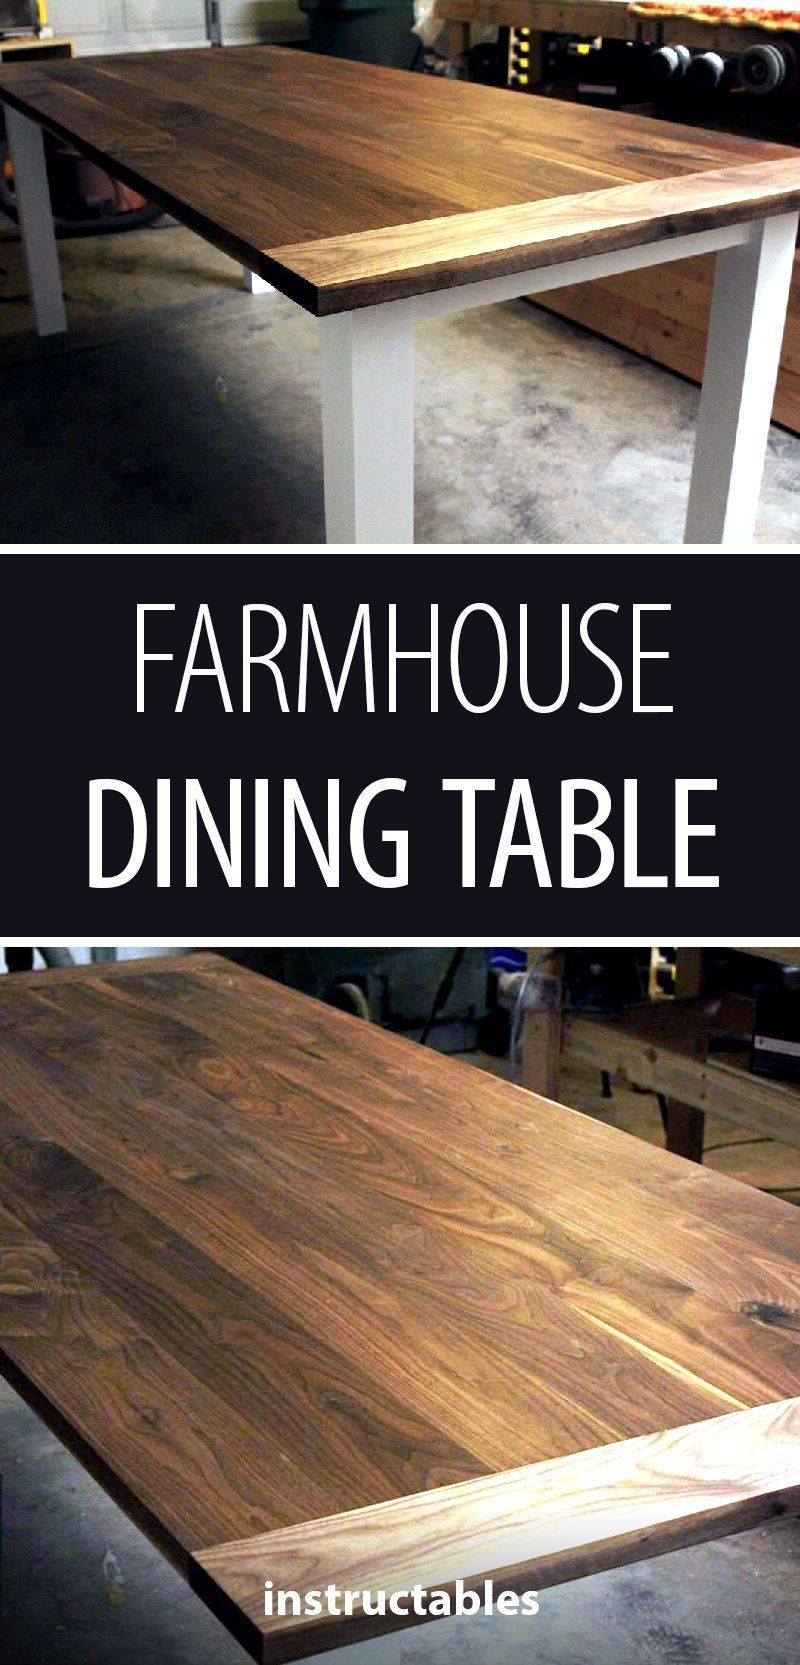 Farmhouse Dining Table - Walnut and Alder